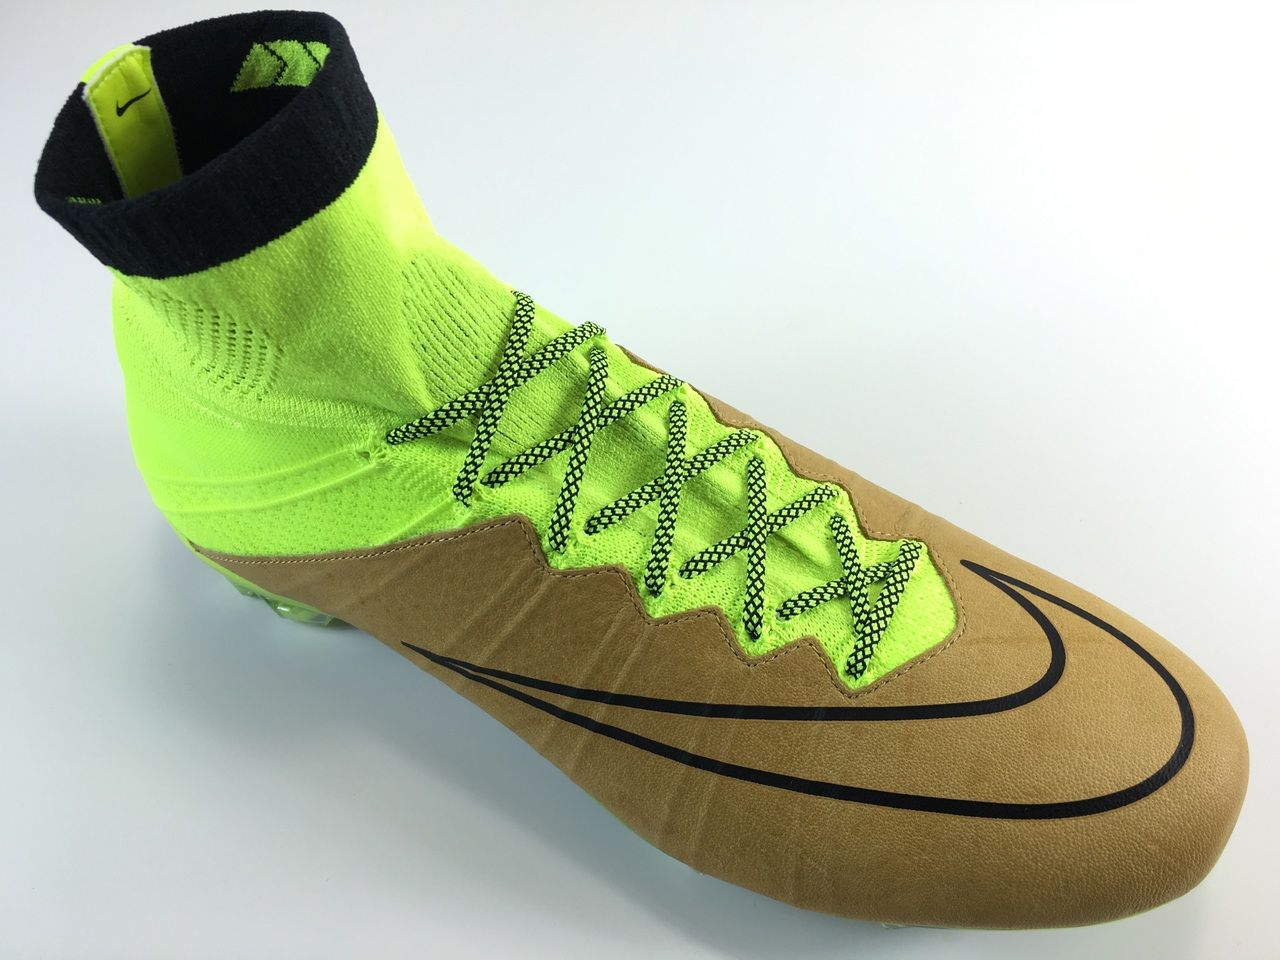 4a444cc1f7a9 ... SR4U Laces Grid Neon YellowBlack Premium Soccer Laces on Nike Mercurial  Superfly 4 Leather ...